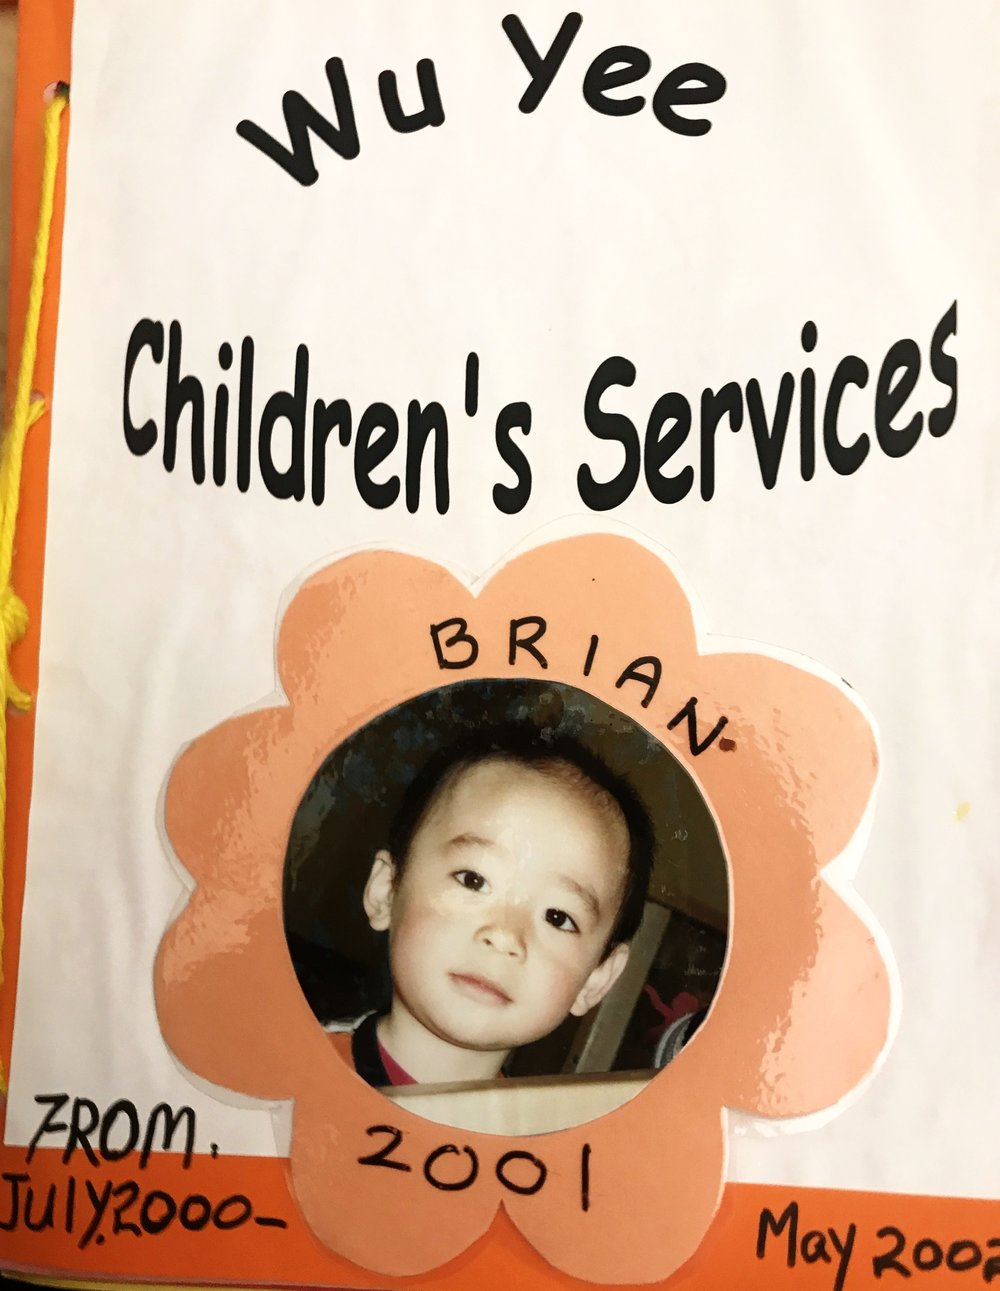 Brian Liu as a Wu Yee child